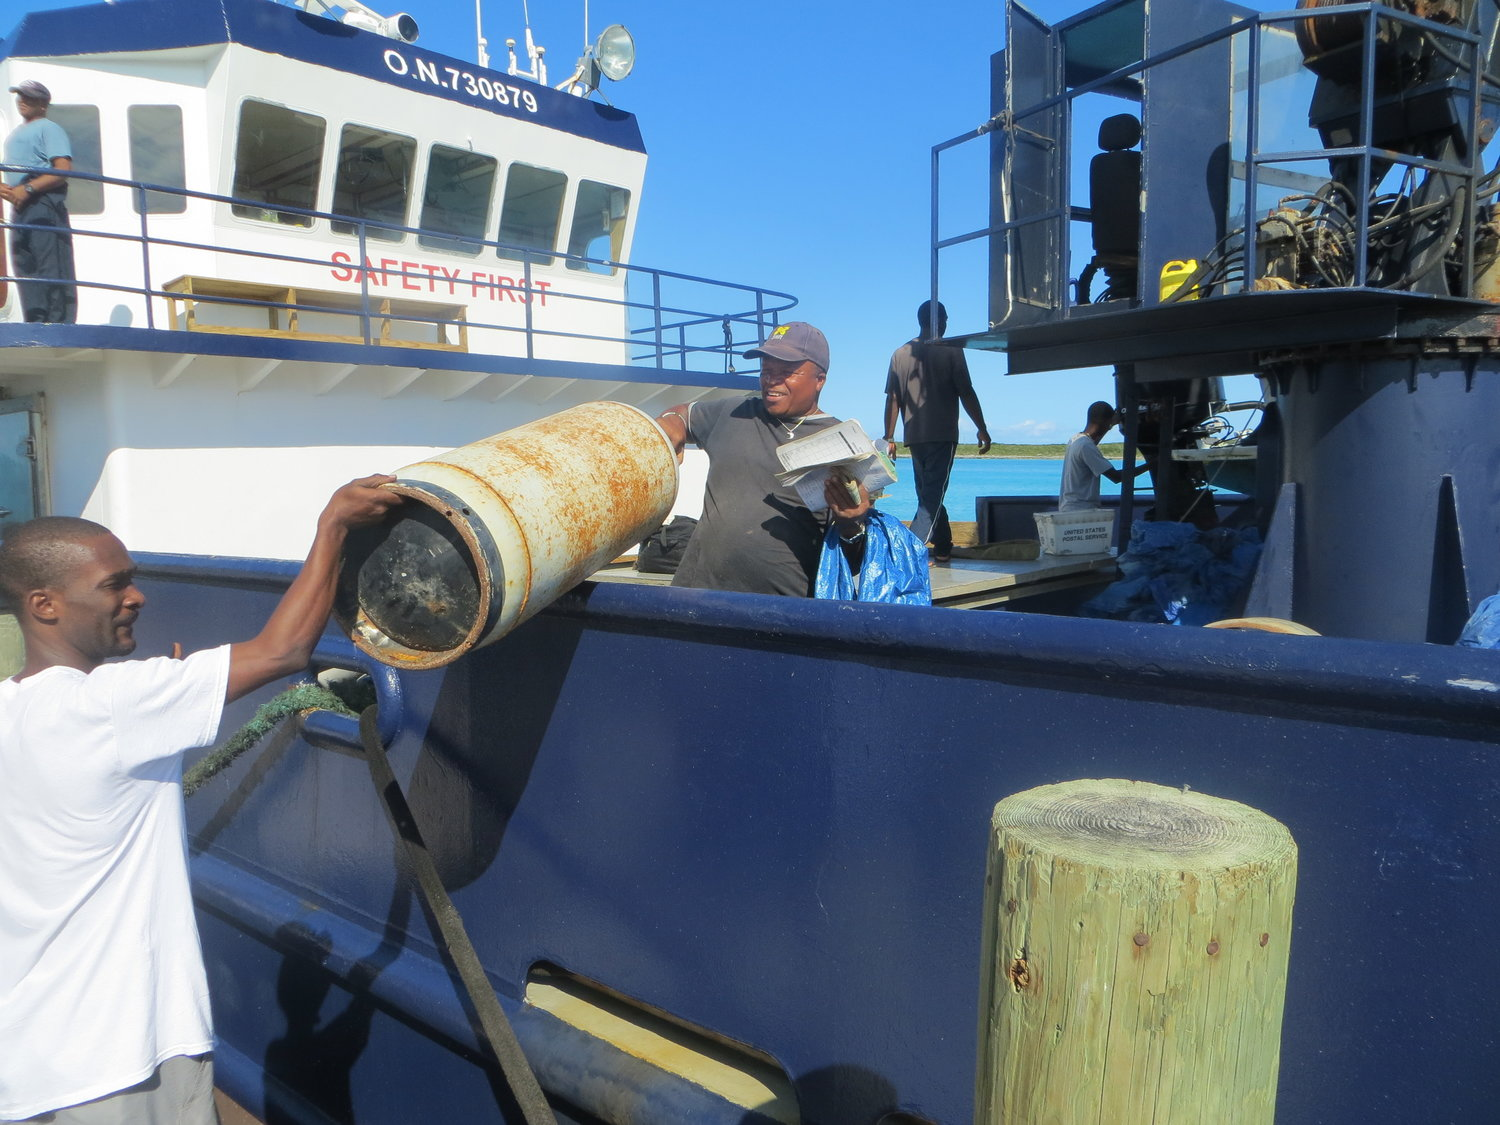 Riding Mailboats in the Bahamas - Four days on a mailboat to the most remote corner of the Bahamas: Ragged Island. Roads and Kingdoms, March 2016.